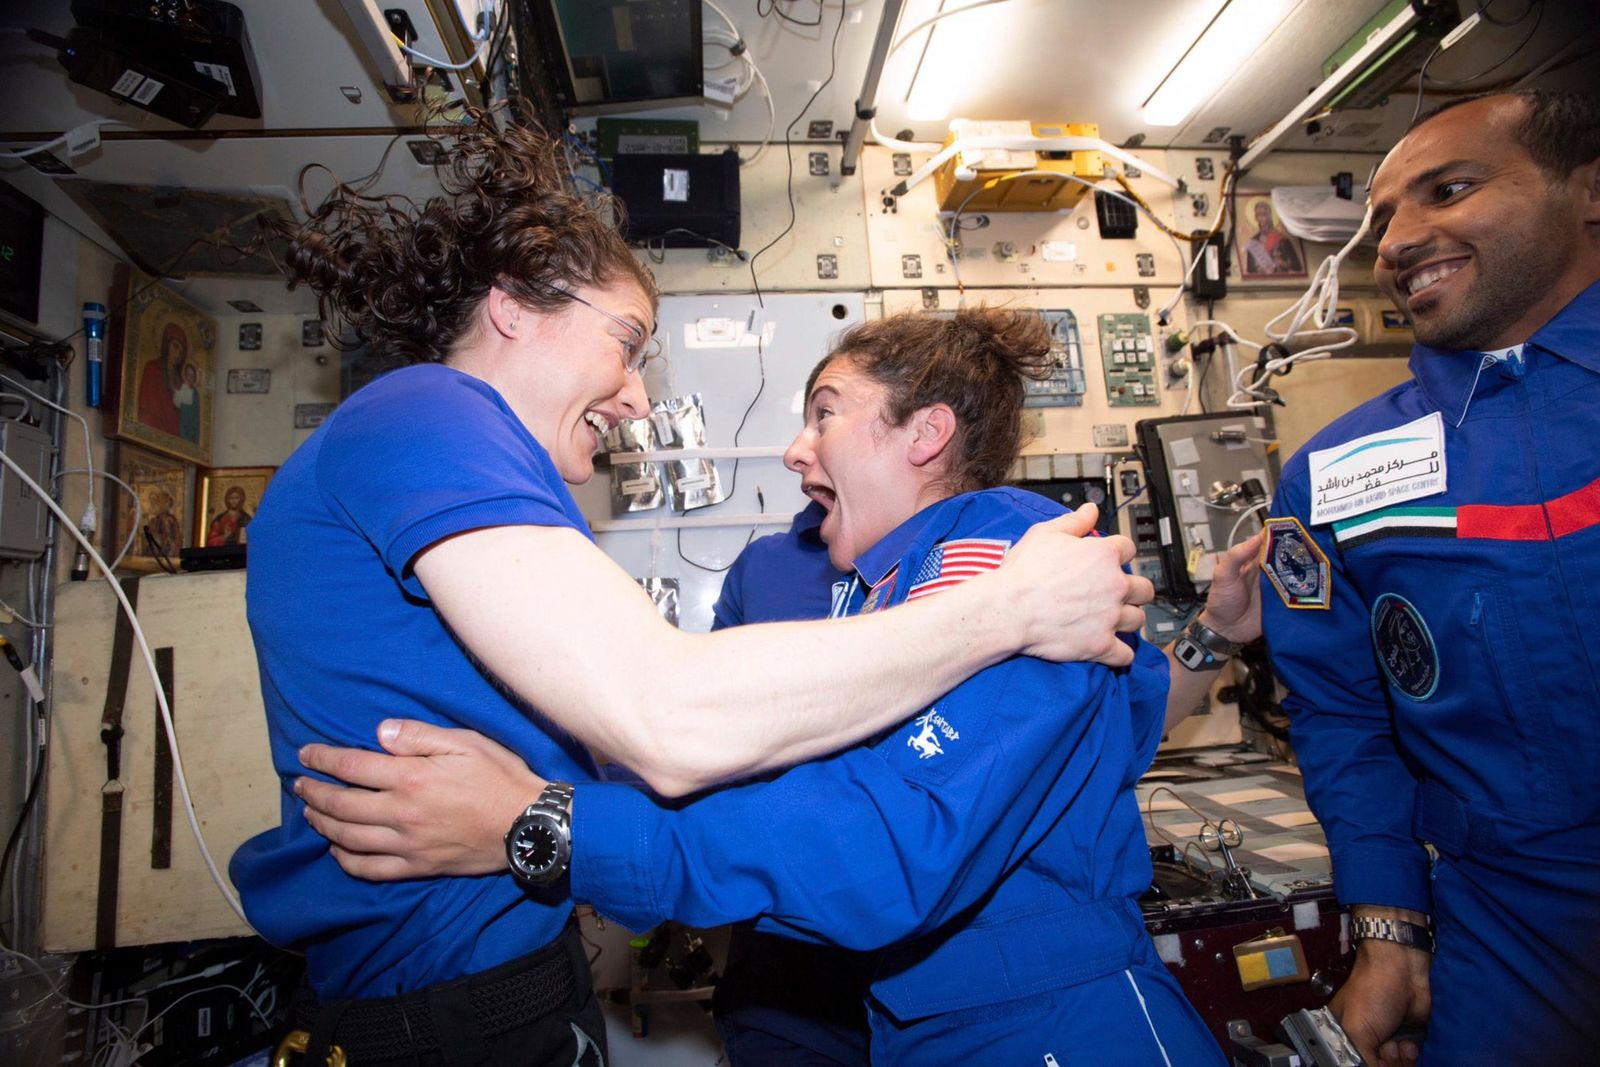 In this photo made available by NASA astronaut Jessica Meir on Sept. 29, 2019, Christina H. Koch, left, and Meir greet each other after Meir's arrival on the International Space Station. (NASA via AP)